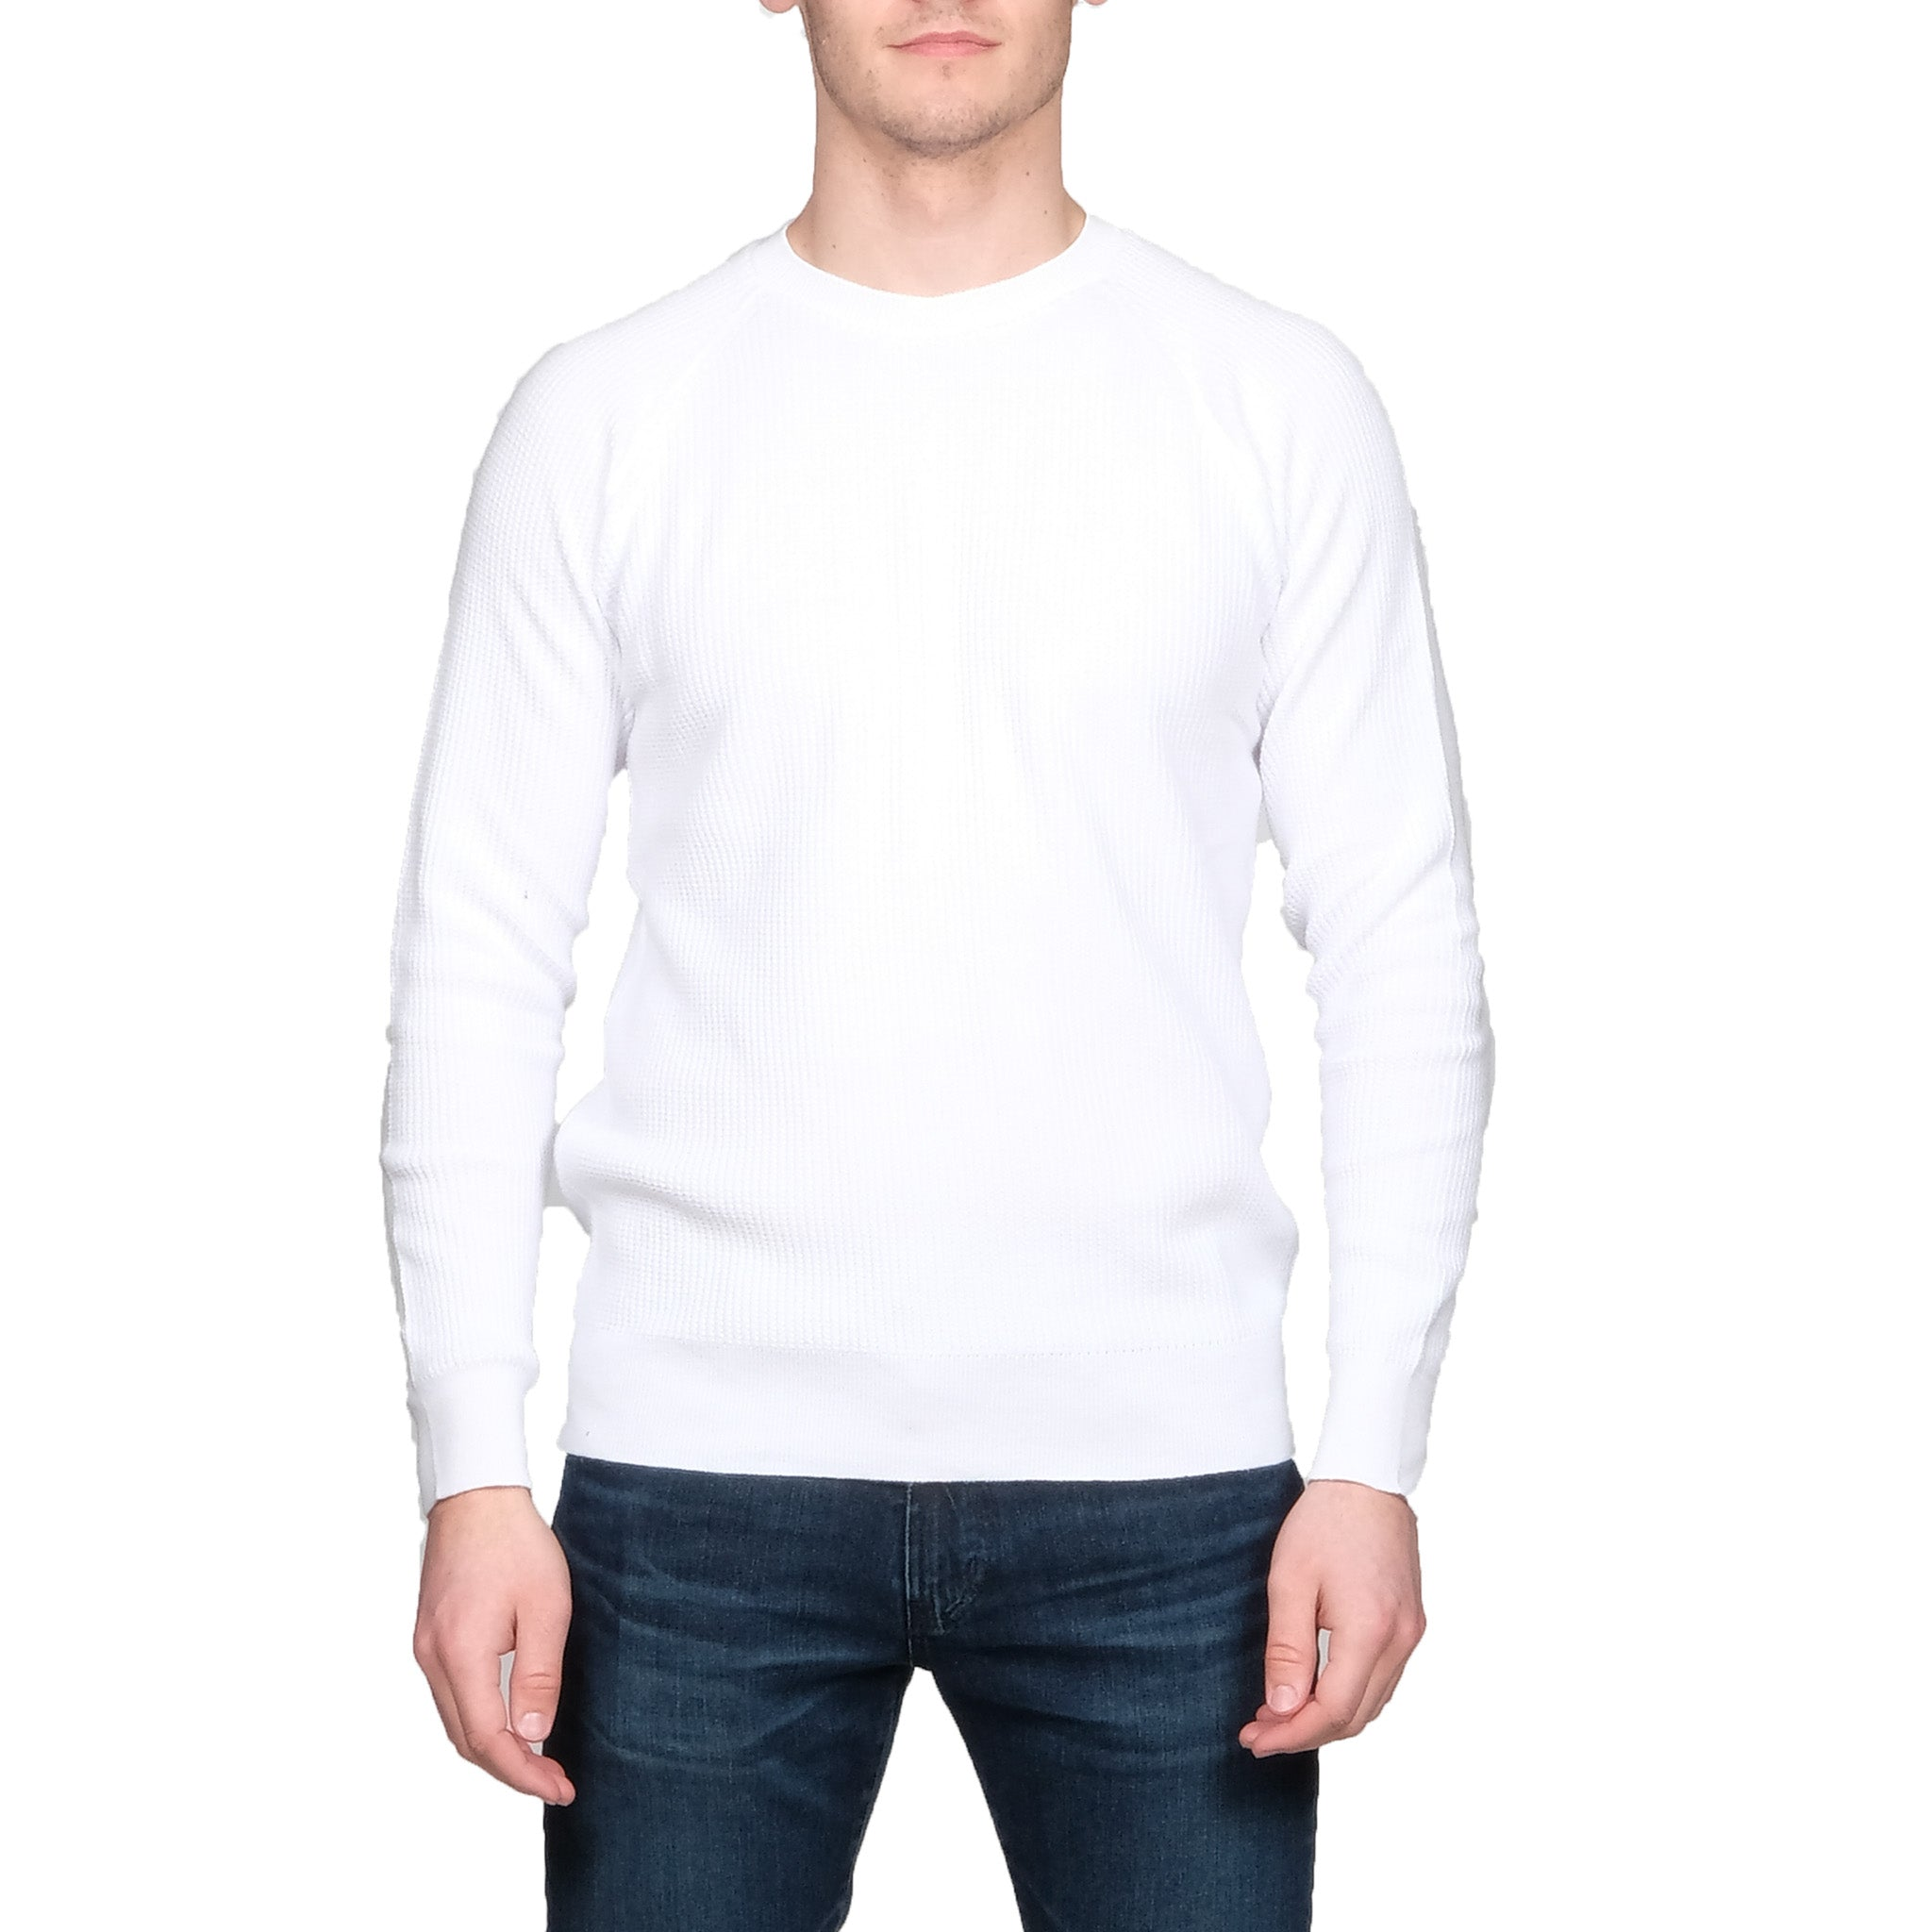 White Waffle Crew Long Sleeve - Mr. Derk Apparel Ltd.